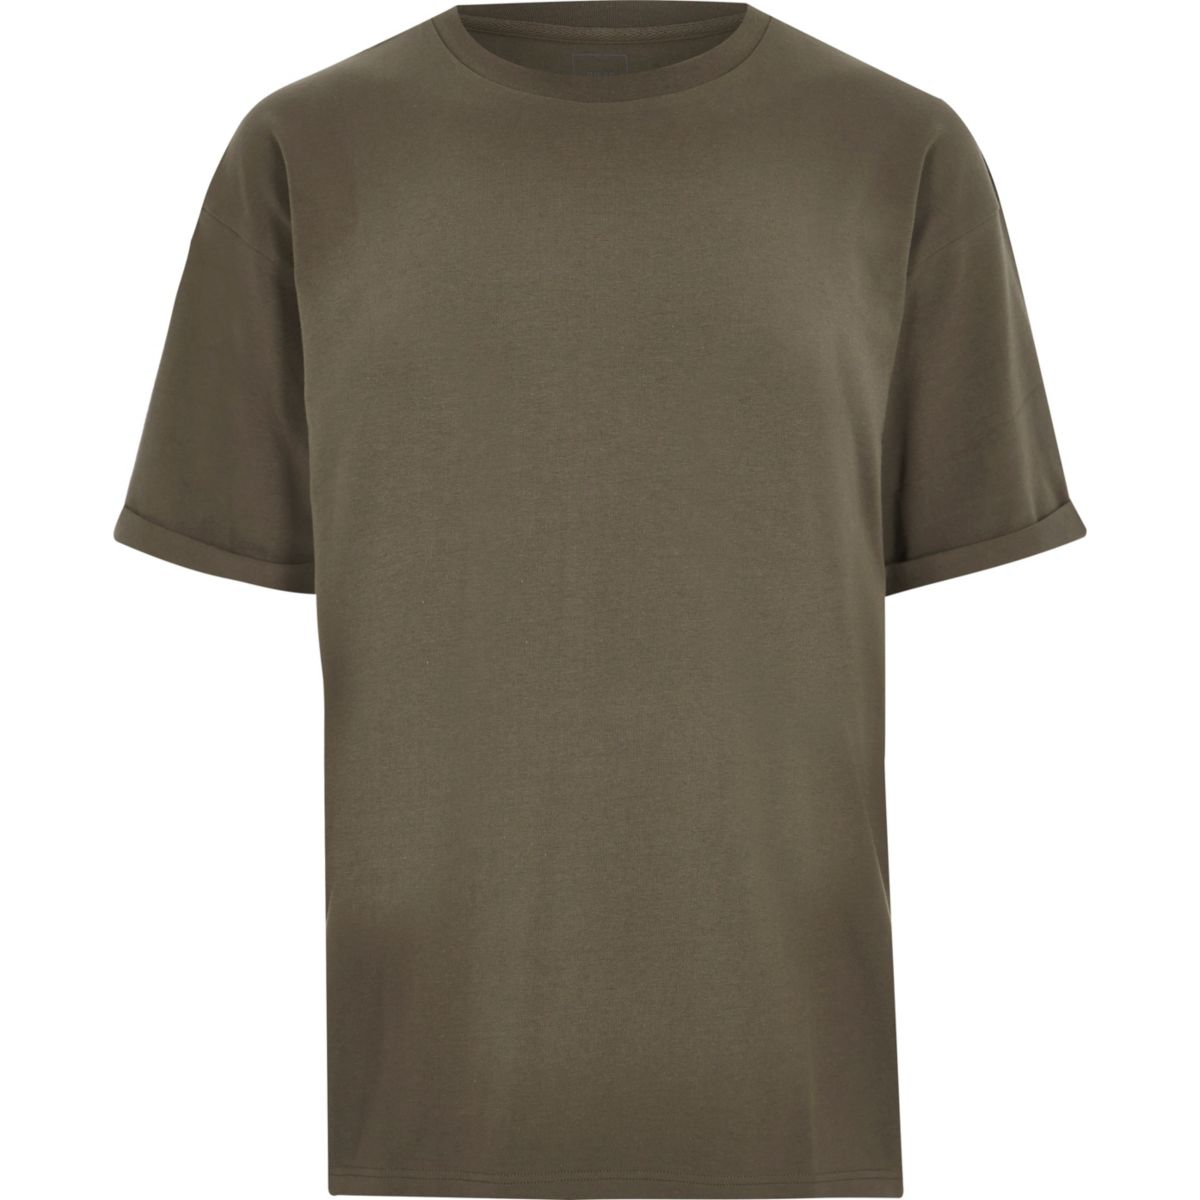 Khaki green oversized fit crew neck T-shirt